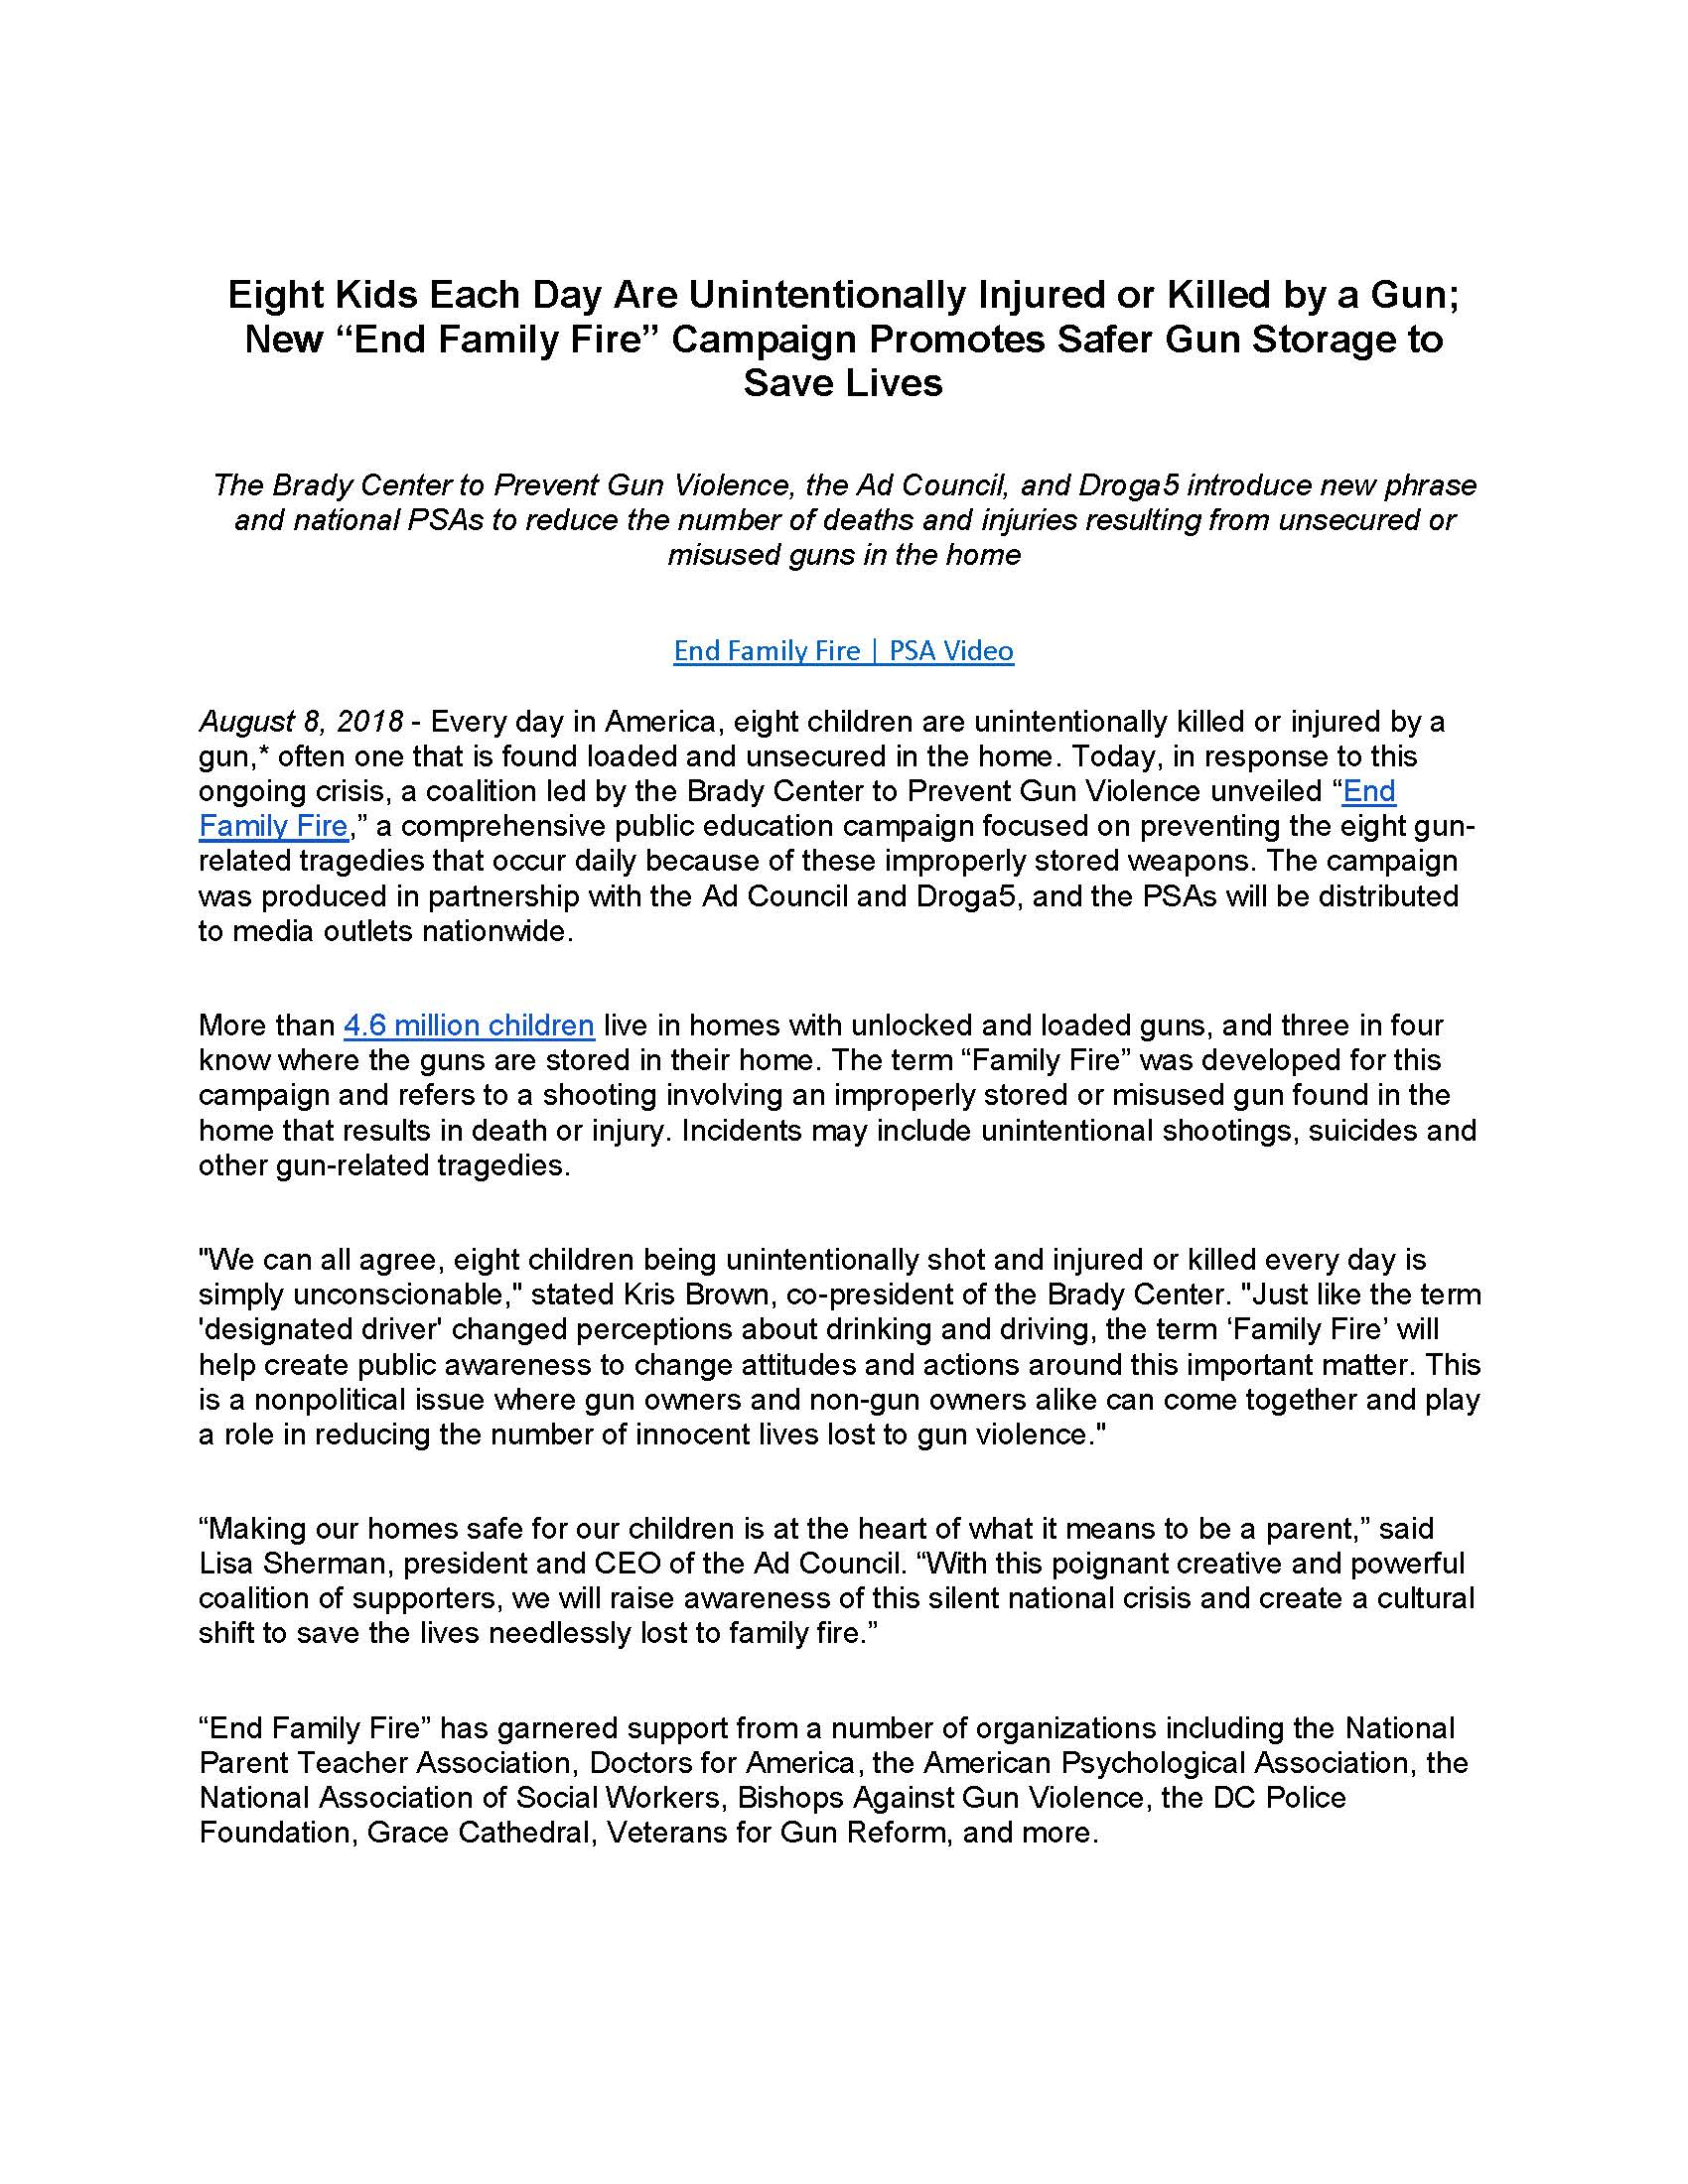 End Family Fire Press Release - Page 1